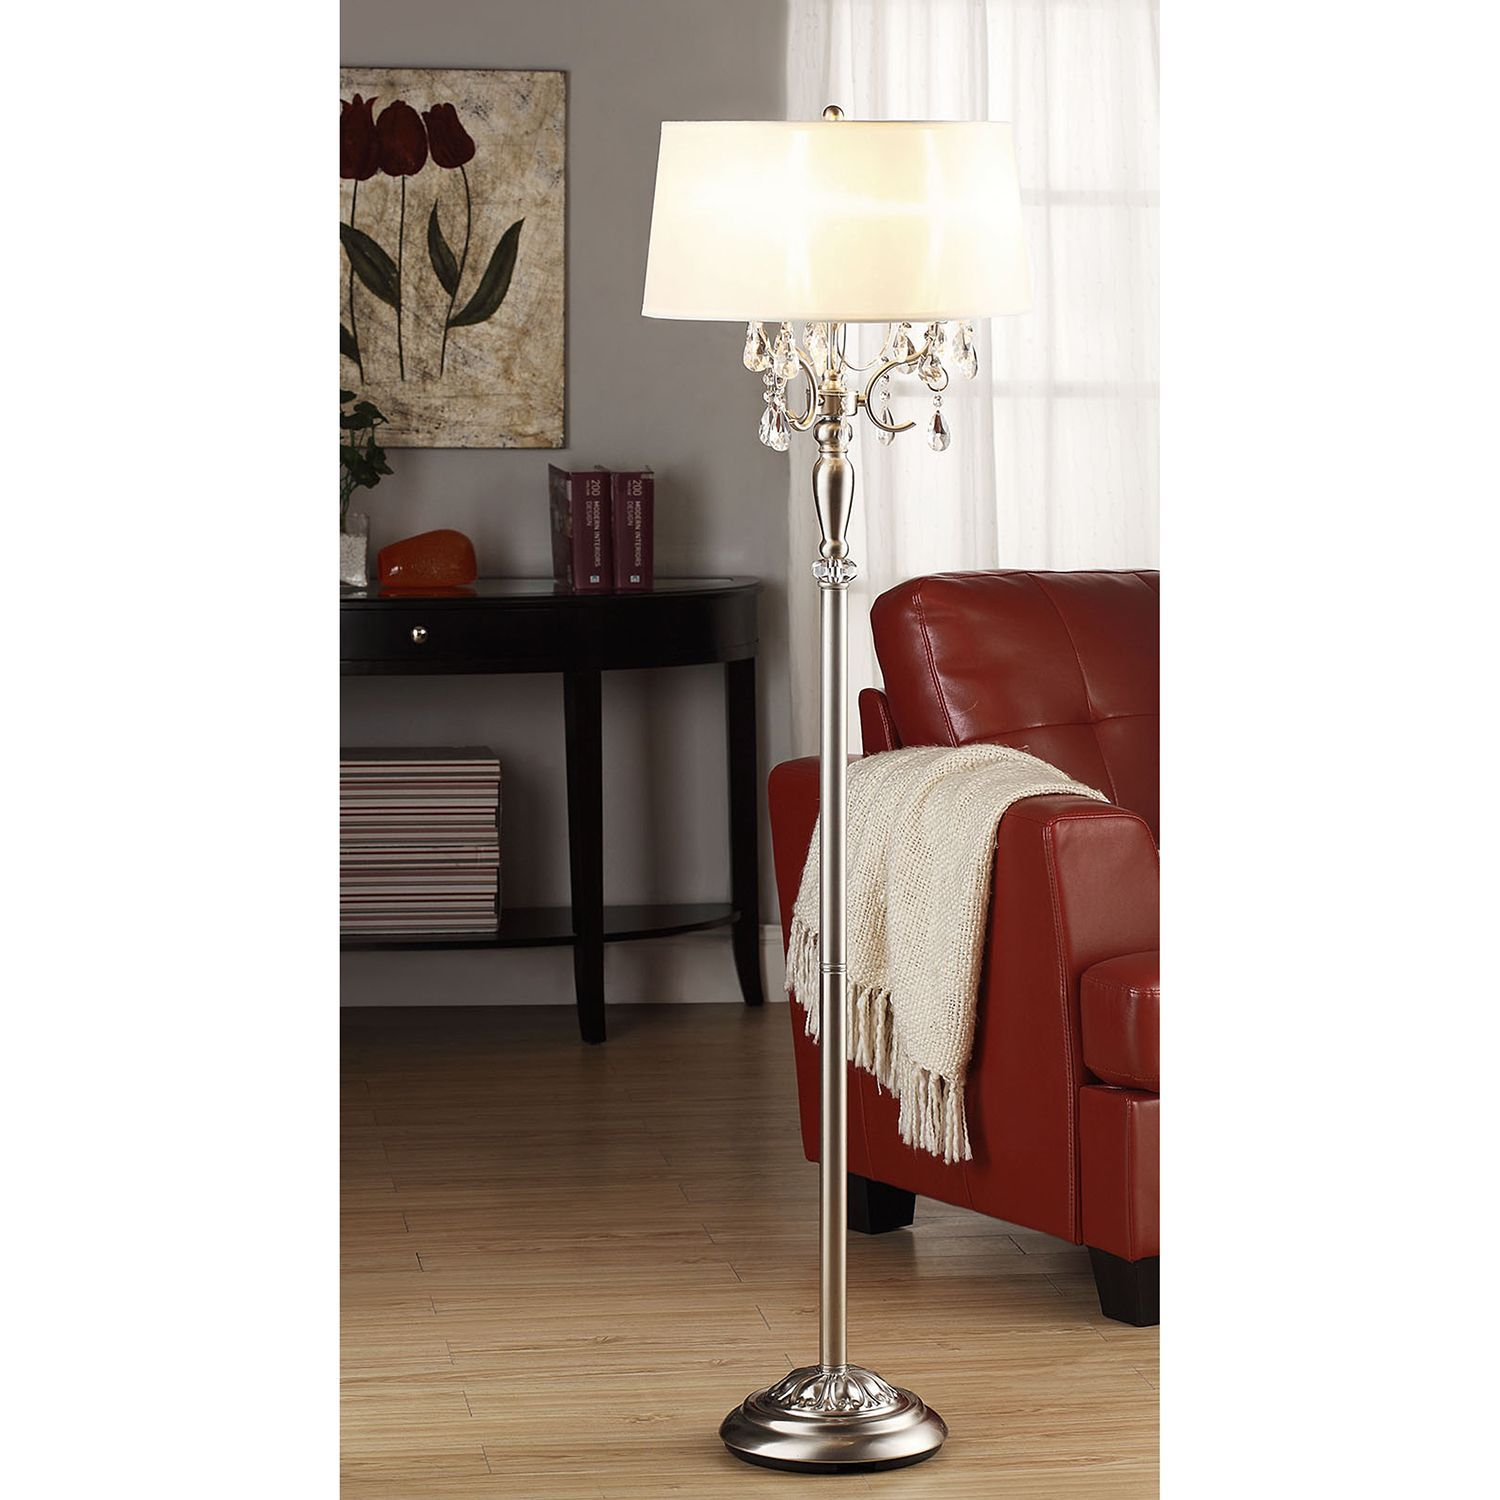 Silver Mist 1-light Crystal Chrome Floor Lamp by iNSPIRE Q Classic by  iNSPIRE Q